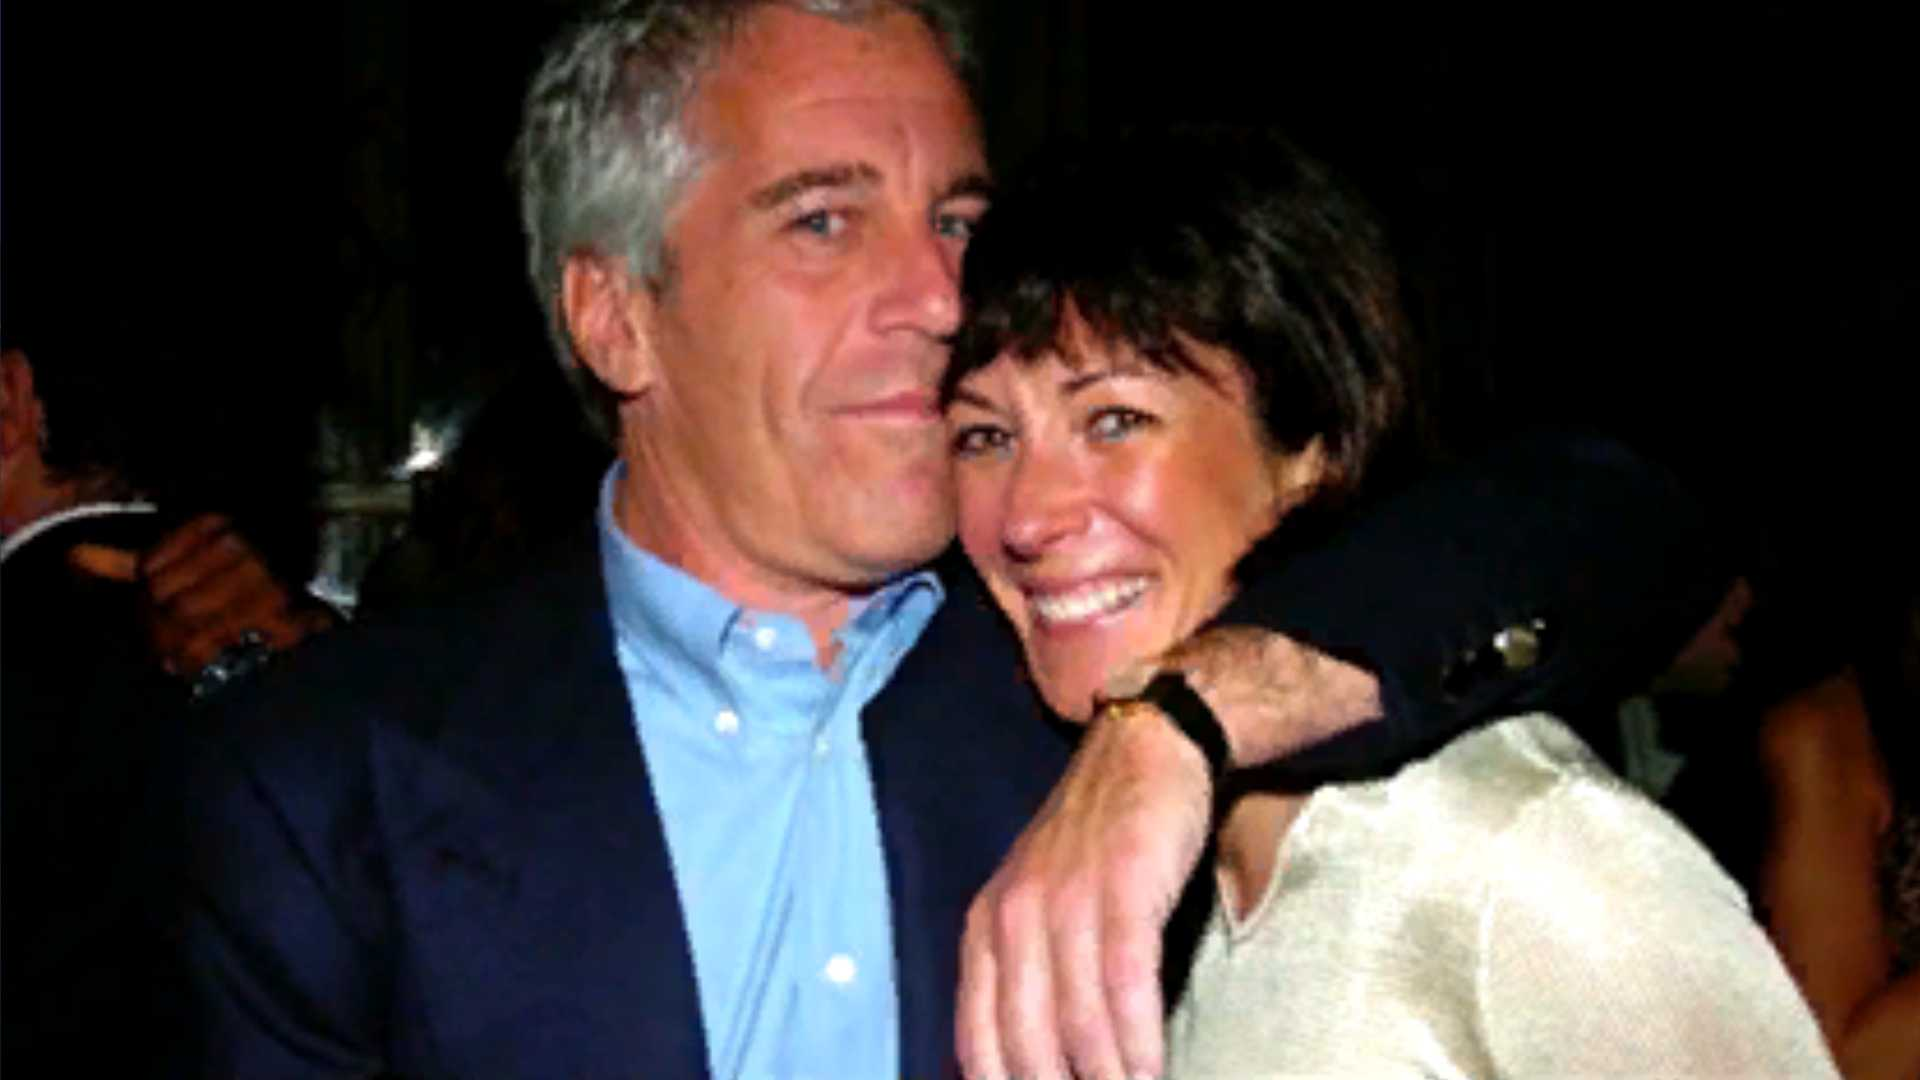 Ghislaine Maxwell kept album containing photos of topless girls